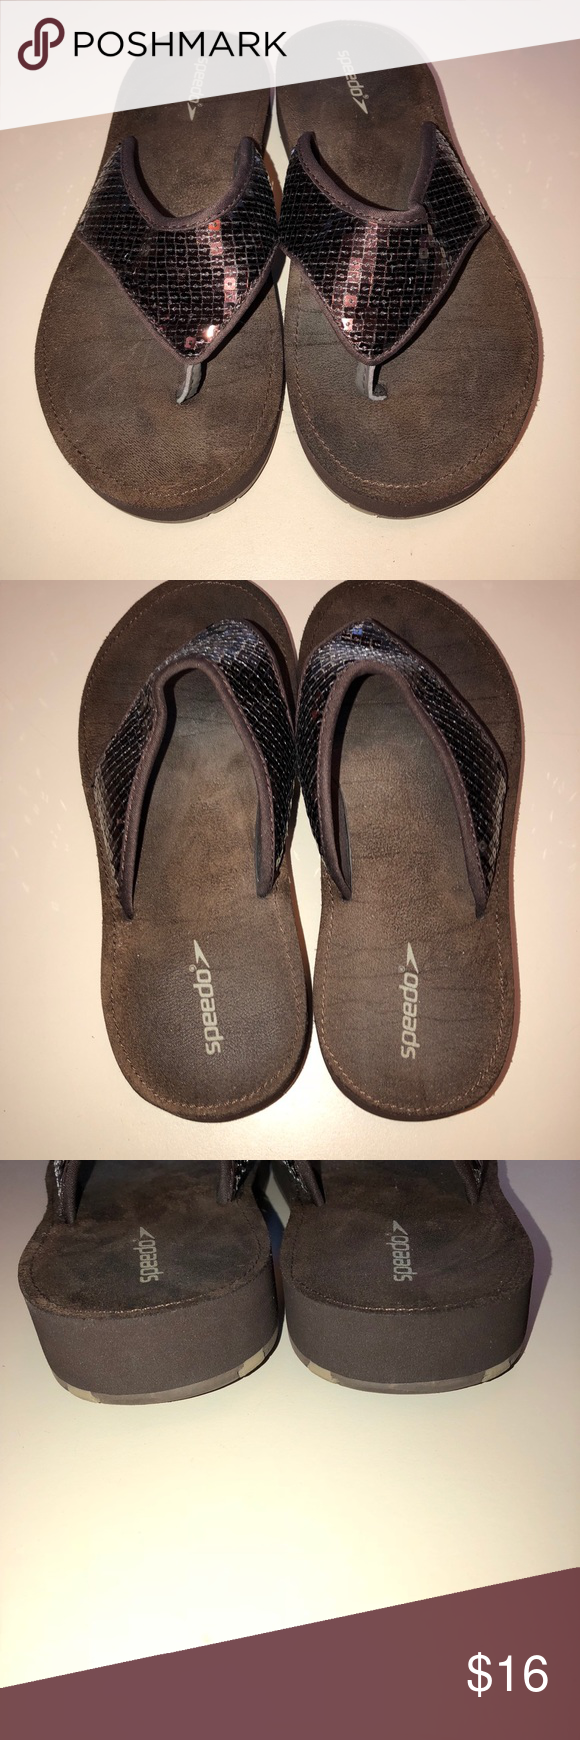 d6e7ab27f954f8 Speedo Sandals Excellent condition size 8 Speedo sandals! See photos for  details ) Speedo Shoes Sandals